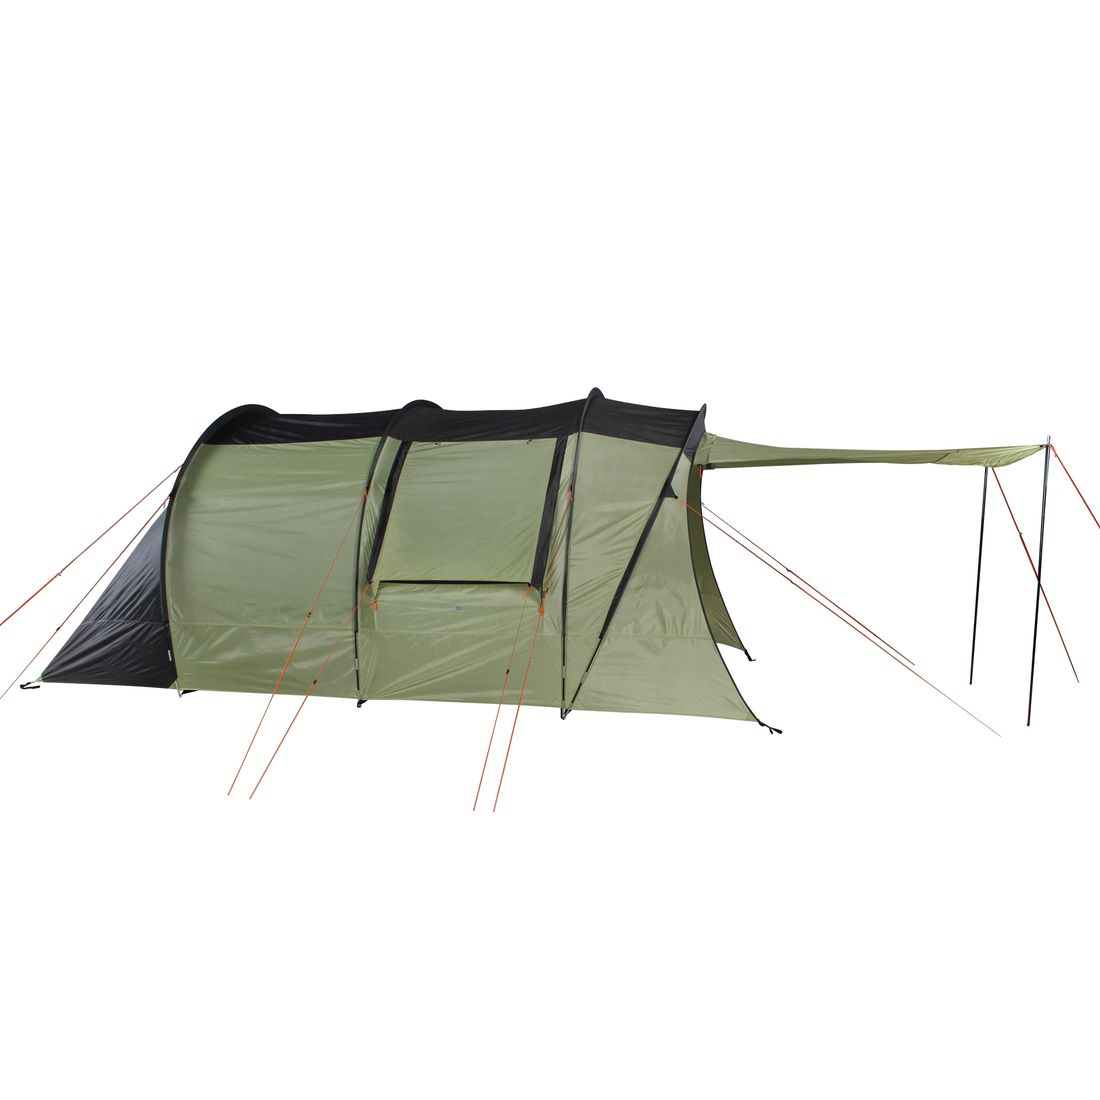 10T Stockholm 5 person tunnel tent, waterproof 5000mm family tent XXL, sleeping cabin, awning